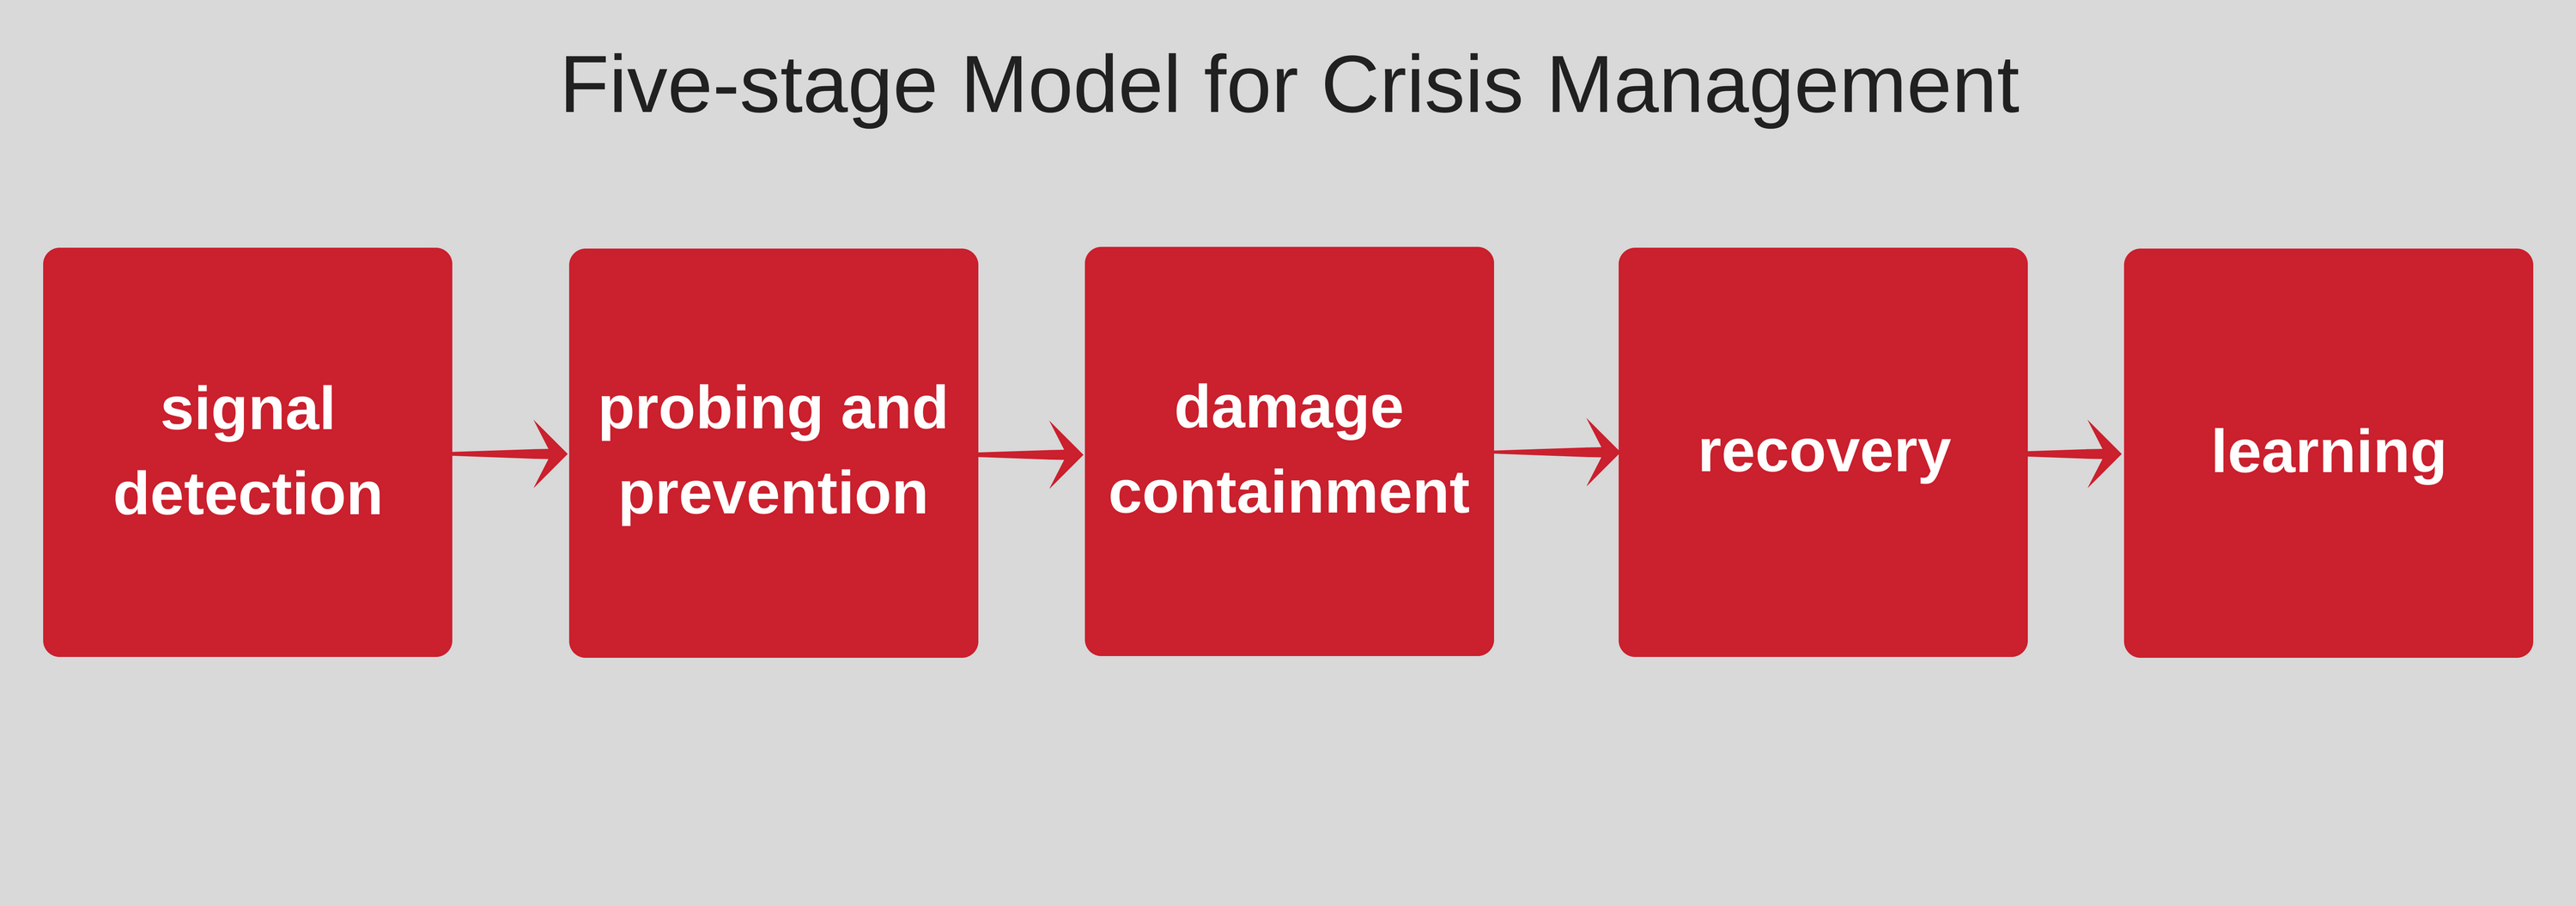 Lesson 1: Prominent Ethical Issues in Crisis Situations